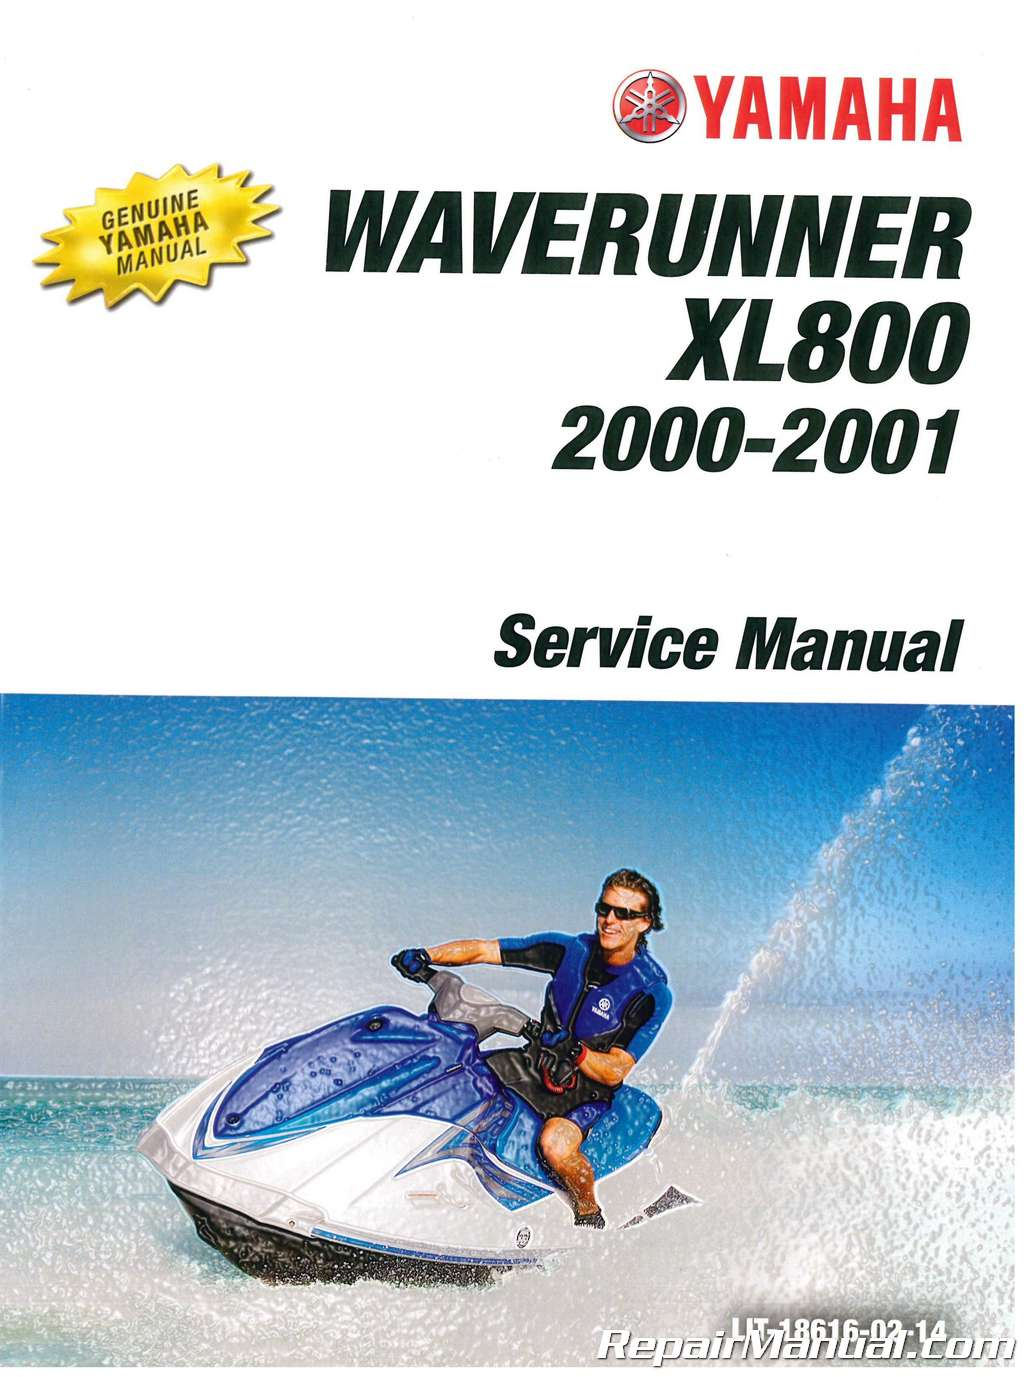 Honda Vin Decoder >> 2000-2001 Yamaha XL800 Waverunner Service Manual